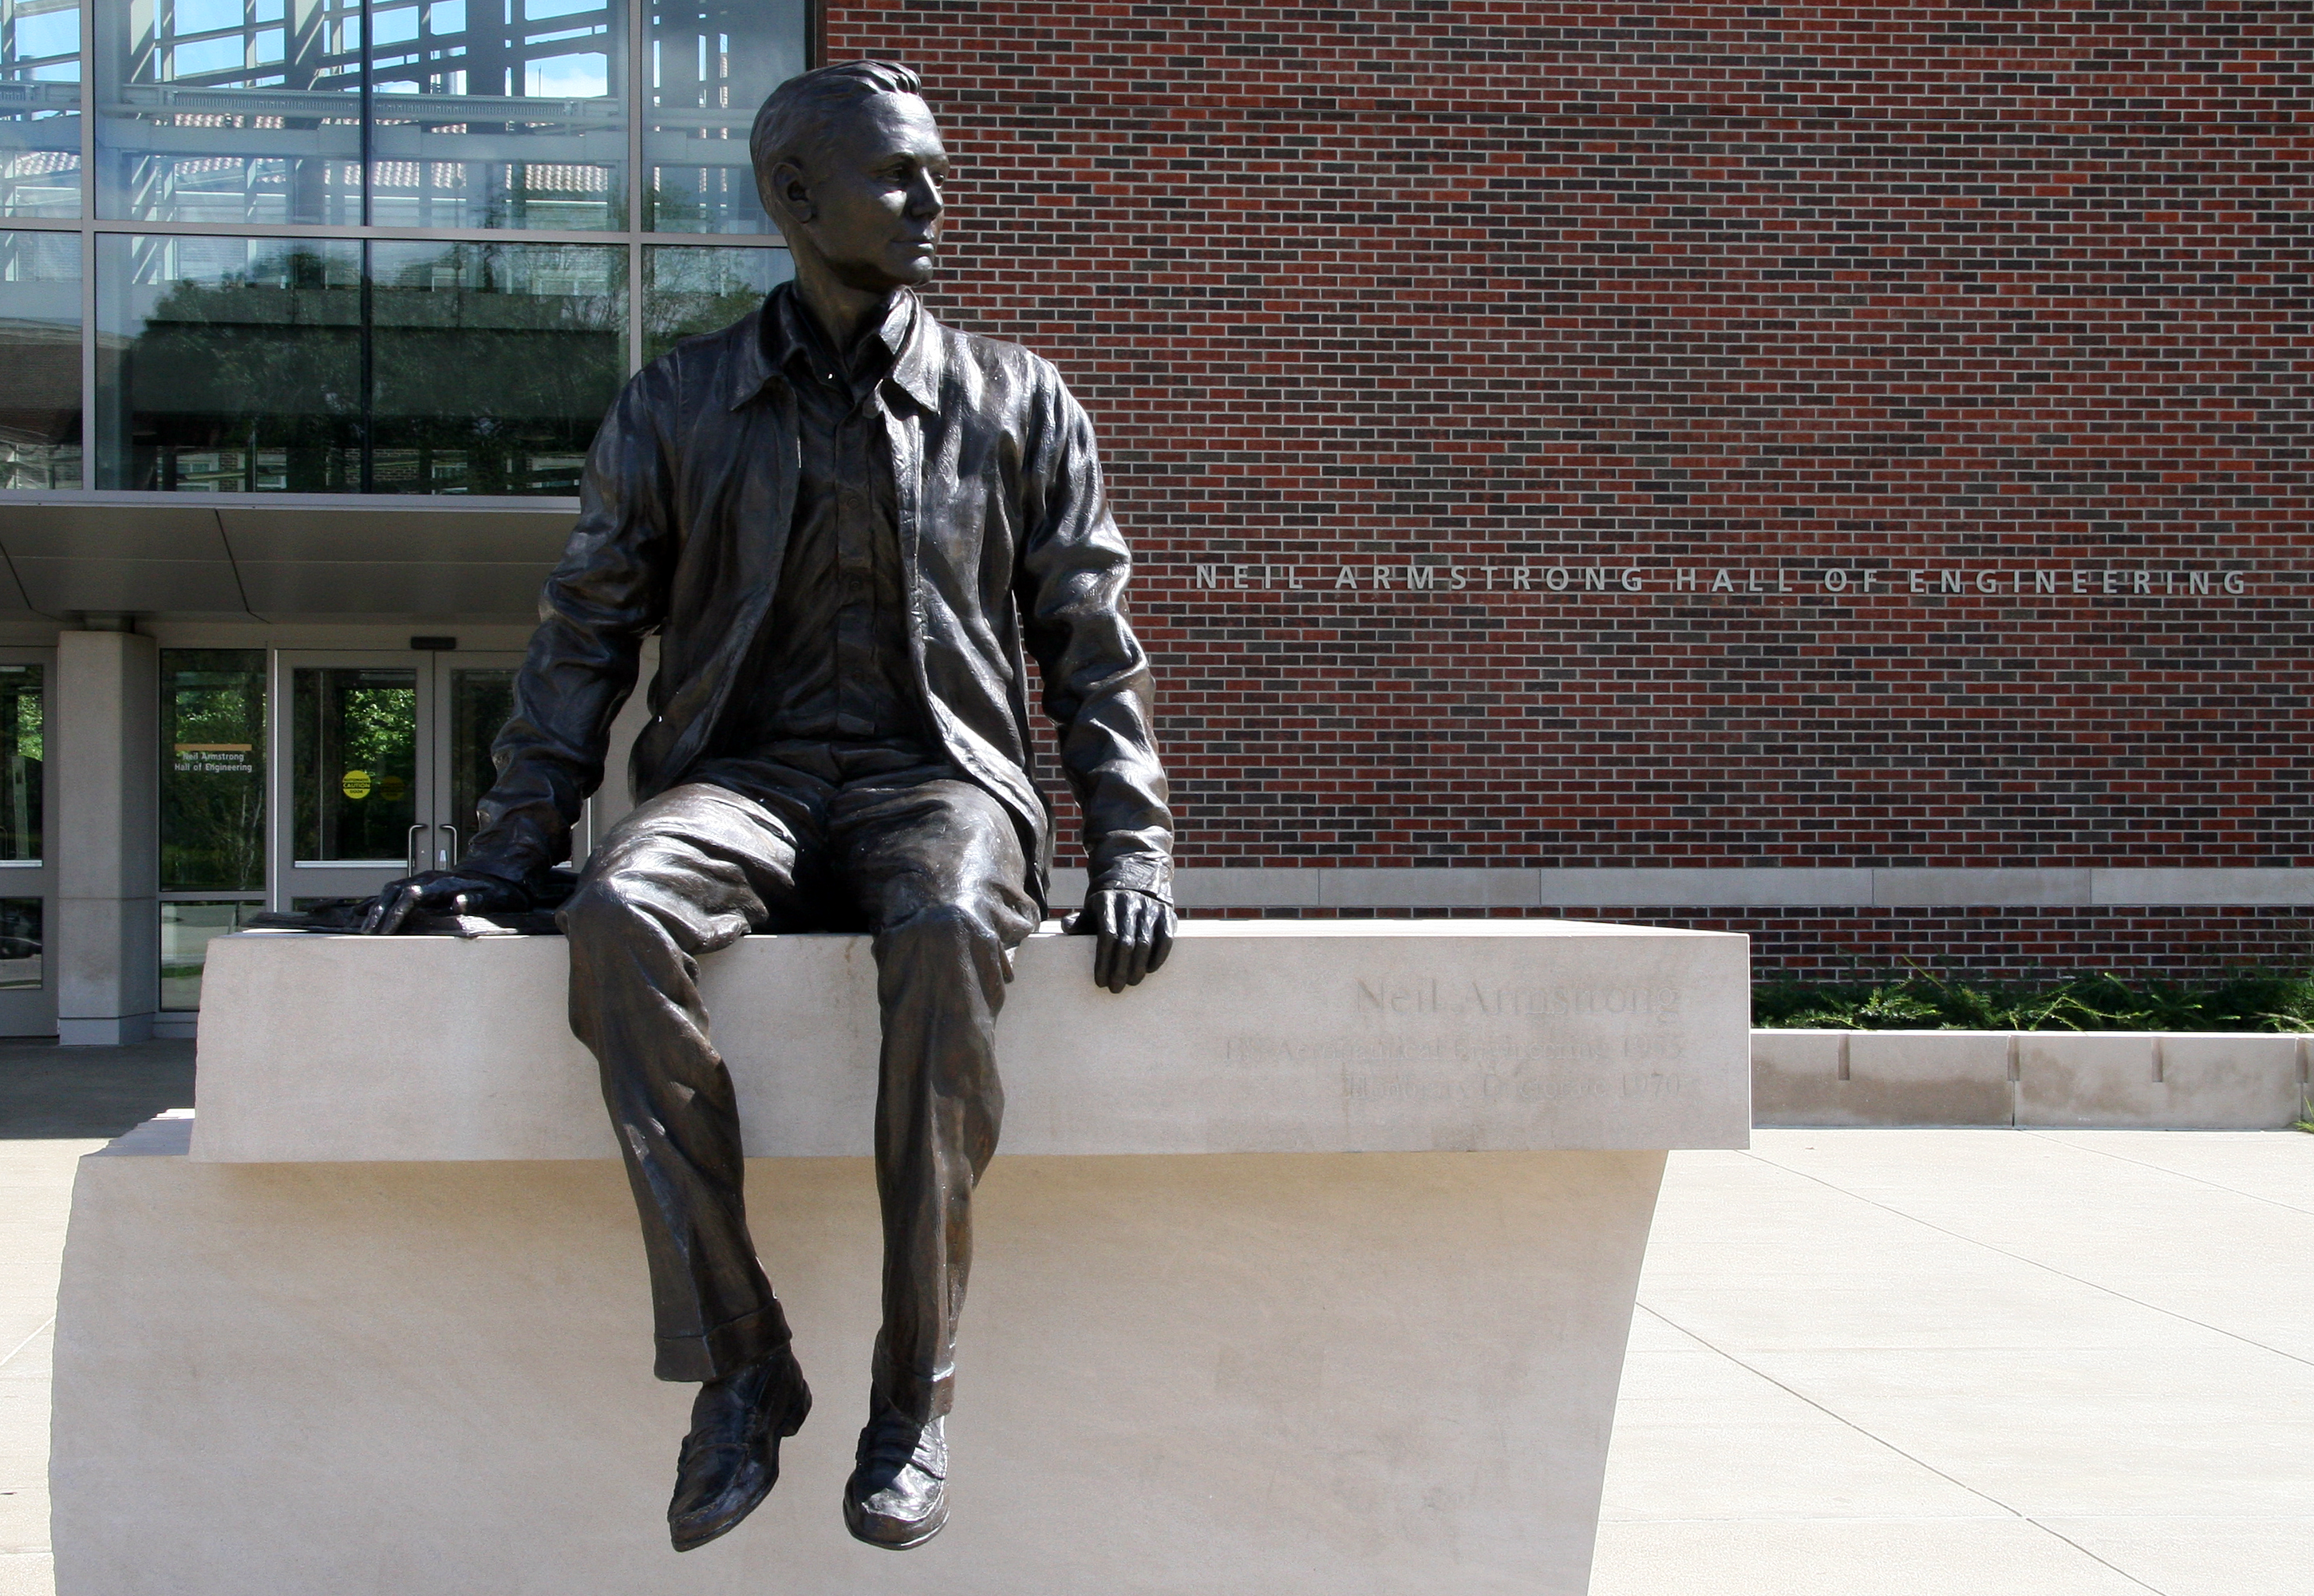 Dick armstrong statue